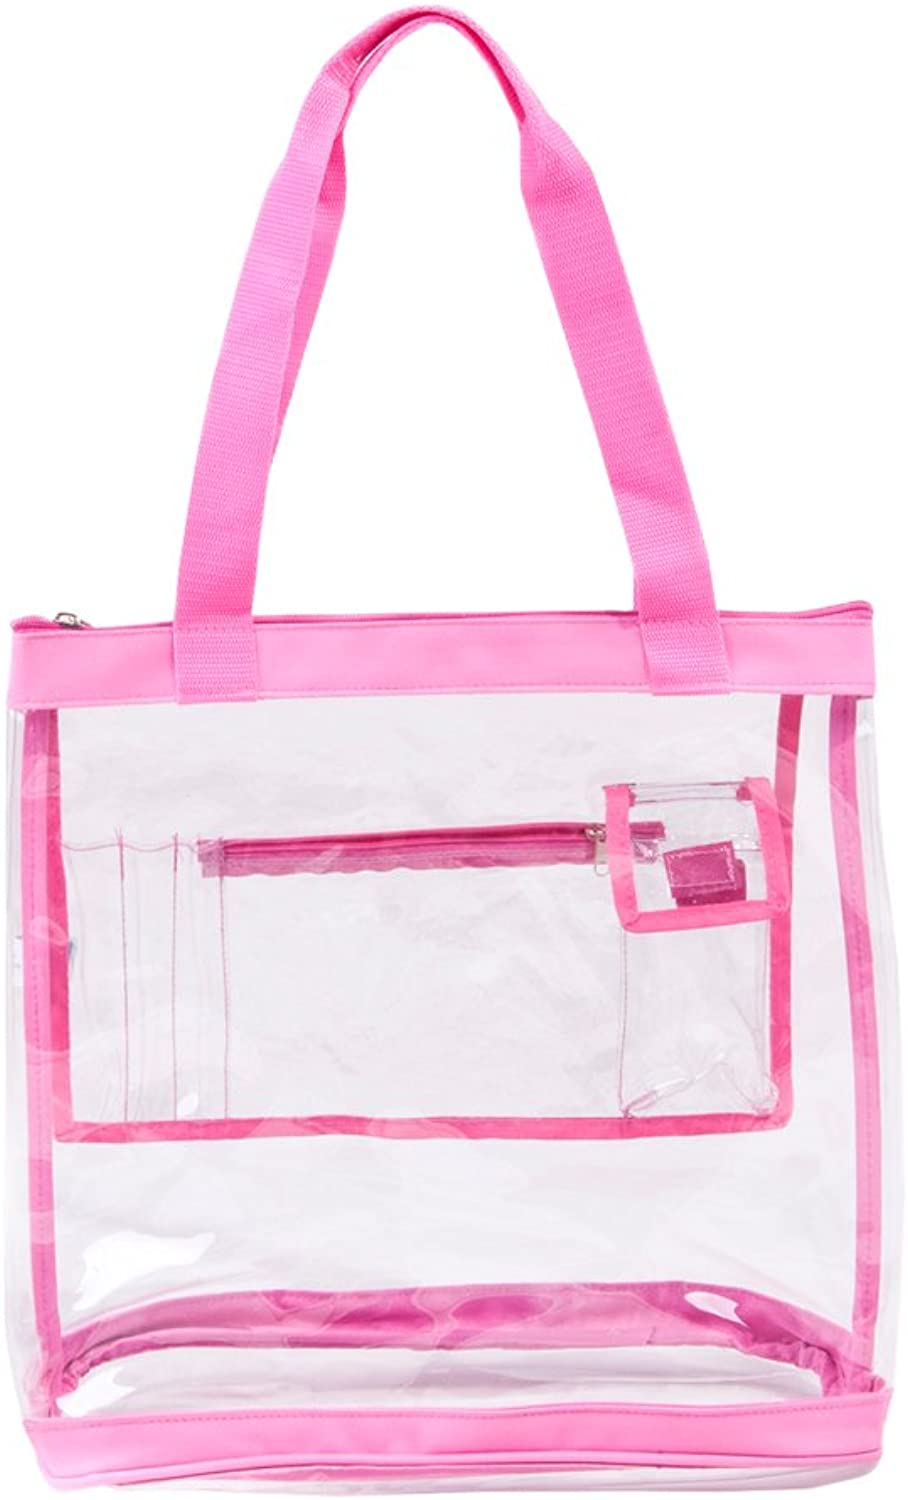 Clear Tote Bag with Zipper Top Closure and Pockets for Women Heavy Duty for Work